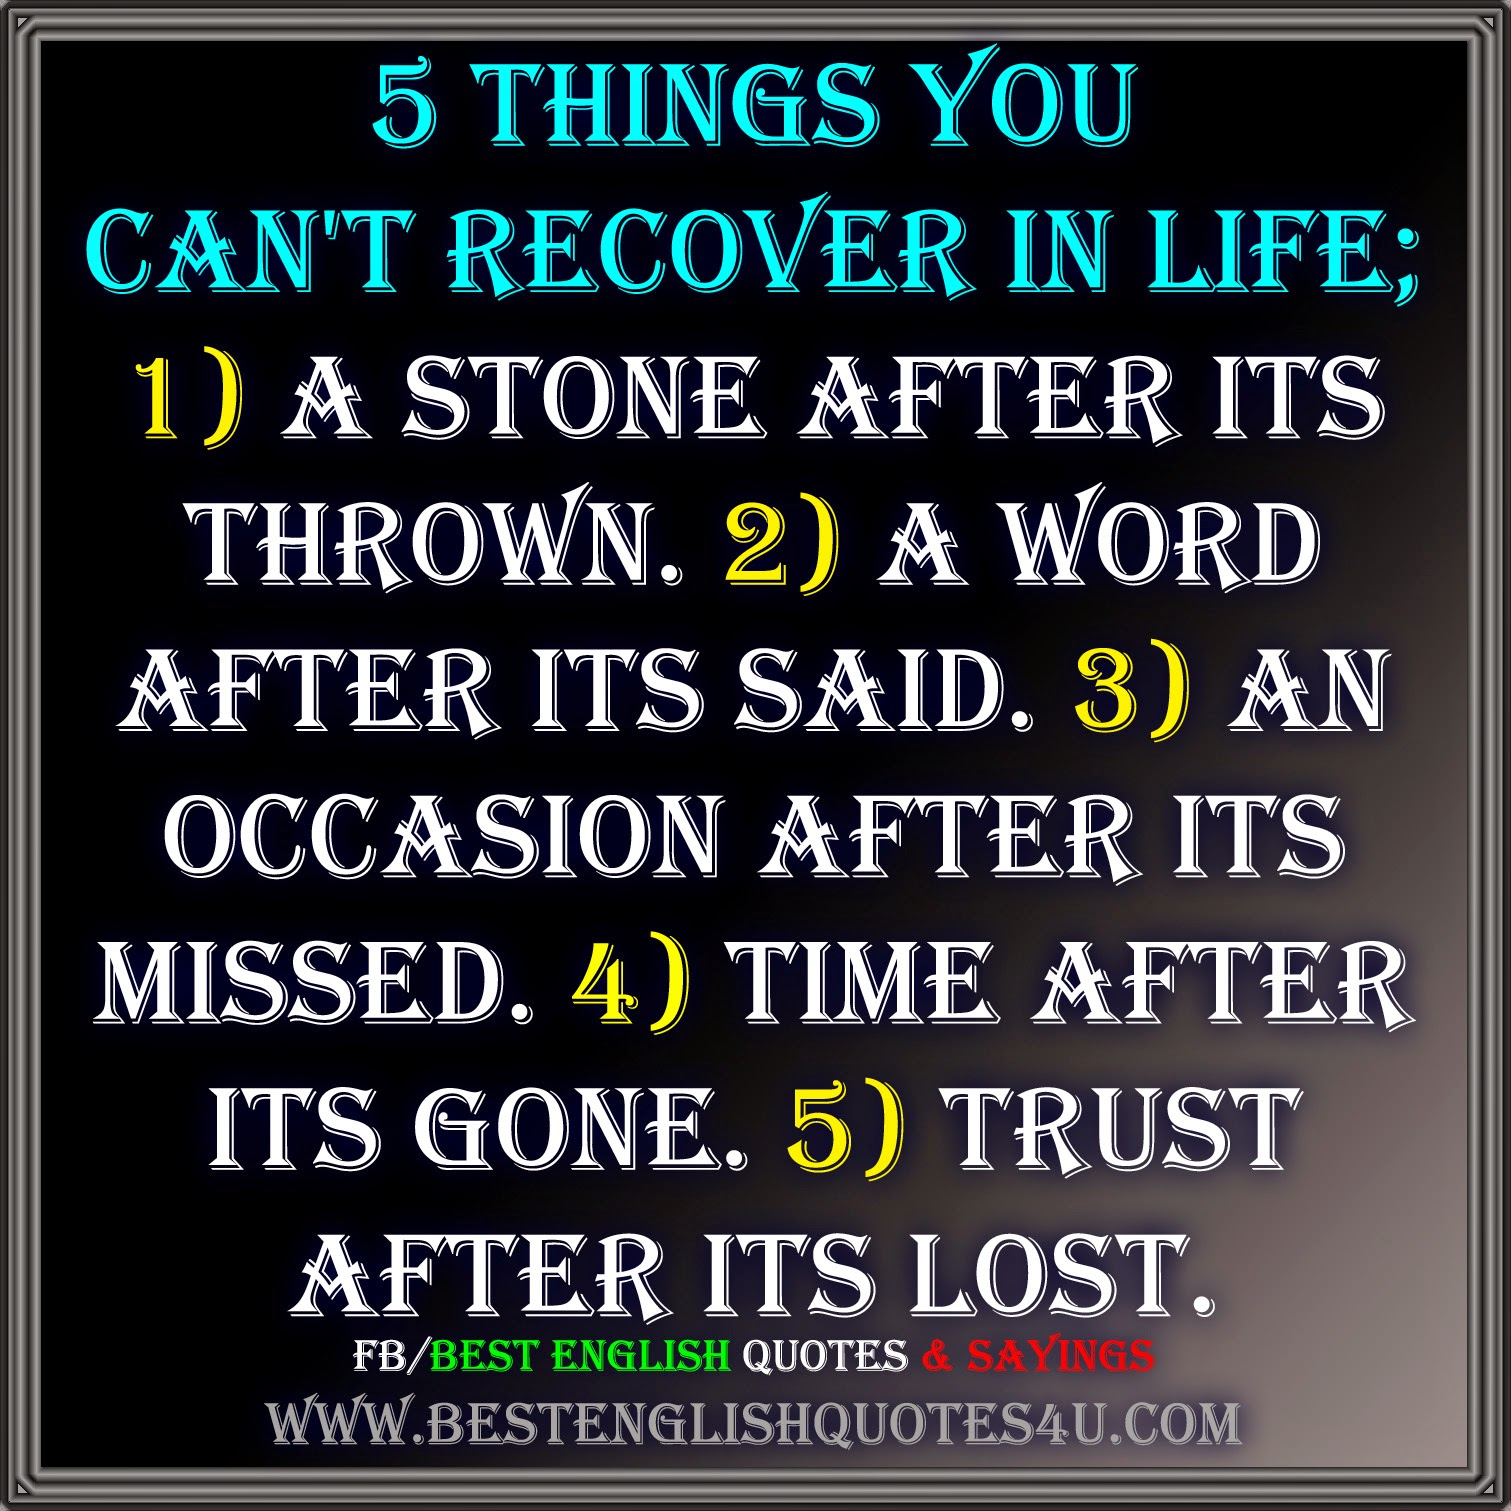 Best English Quotes About Life: 5 Things You Can't Recover In Life...